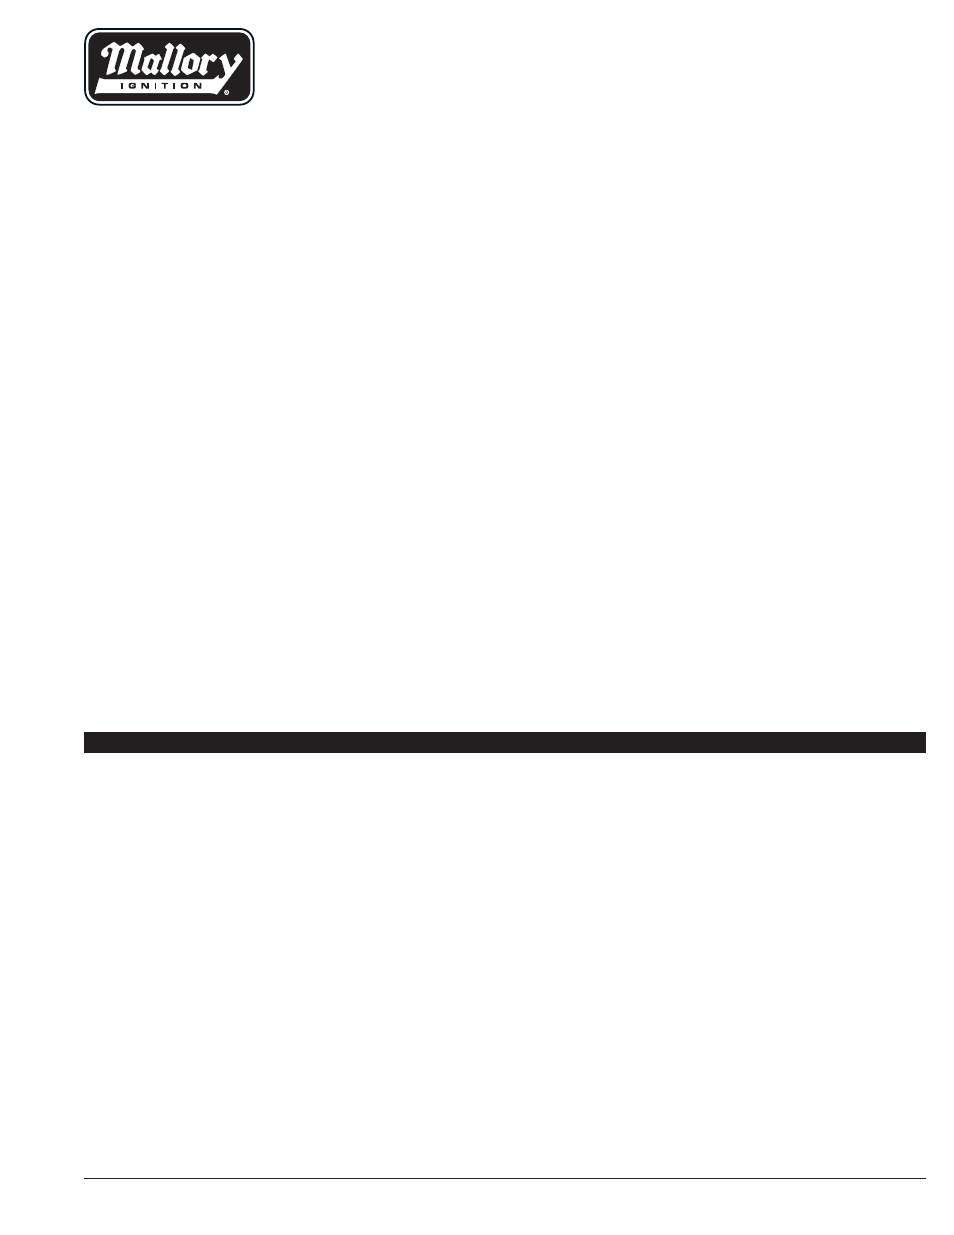 medium resolution of mallory 685 ignition wiring diagram wiring diagrams rh 4 4 51 jennifer retzke de mallory hyfire